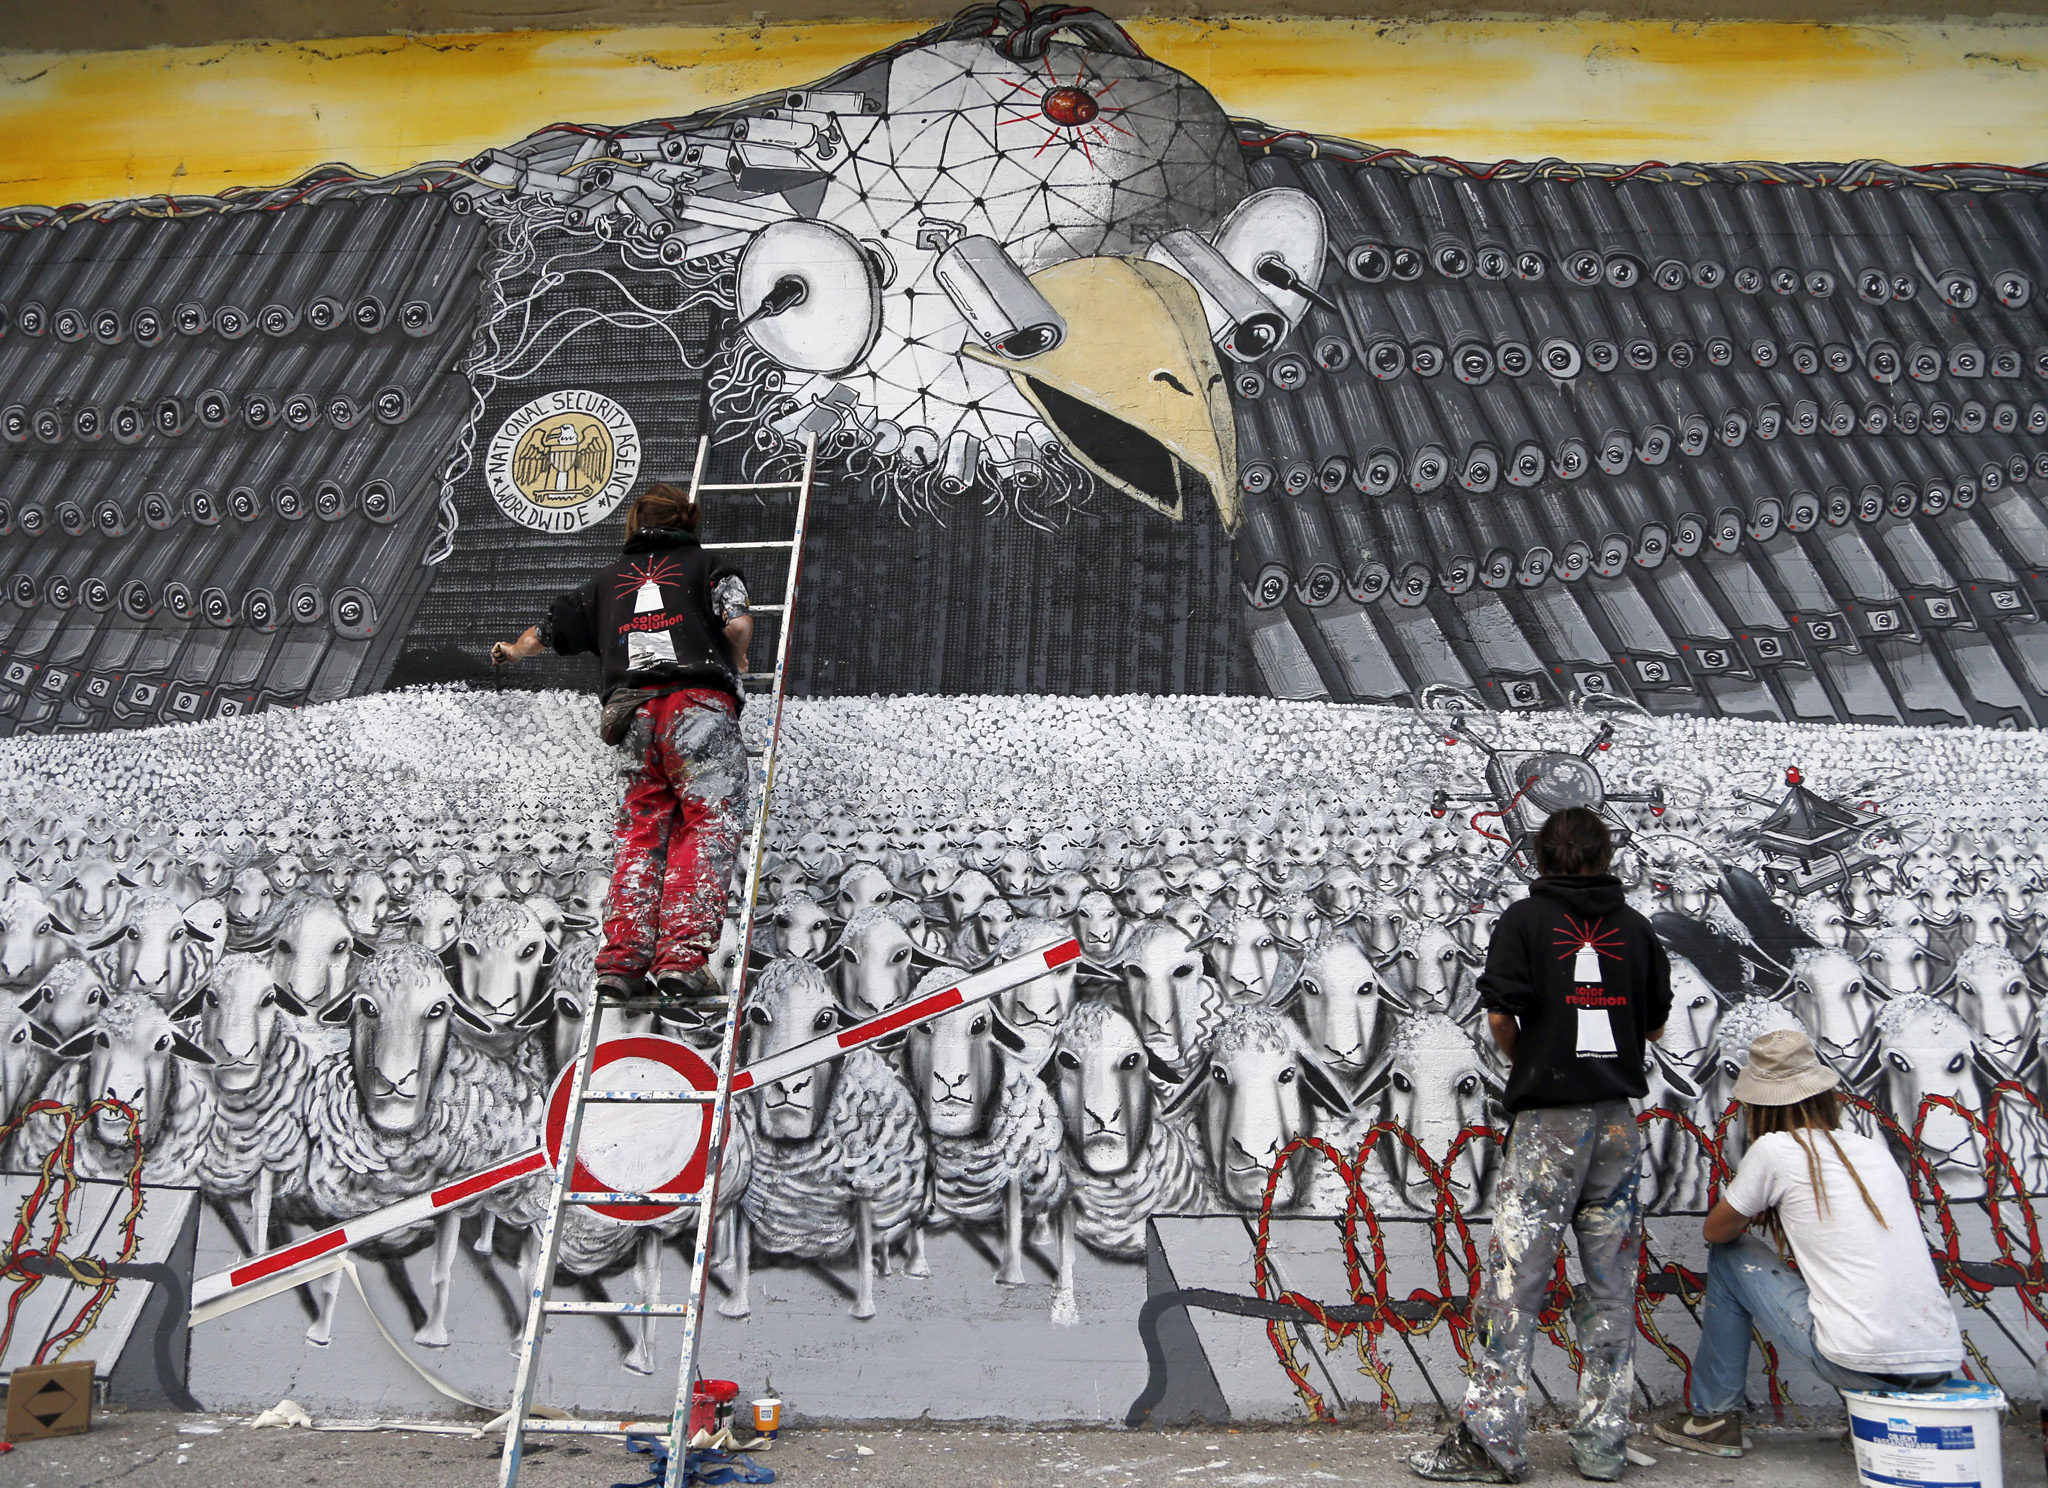 Artists A.Signl, left, and B.Shanti, second from right, of the artist group Captain Borderline paint their mural   'Surveillance of the fittest' at a wall in Cologne, Germany, Thursday, Oct. 24, 2013. The painting shows an American Bald Eagle with surveillance cameras watching a herd of sheep to draw attention to the spying program of the American National Security Agency. Germany demanded answers to ìall open questionsî about U.S. surveillance Thursday following allegations that American intelligence may have targeted Chancellor Angela Merkelís cellphone, and her chief of staff noted that Washington hasnít denied past snooping.